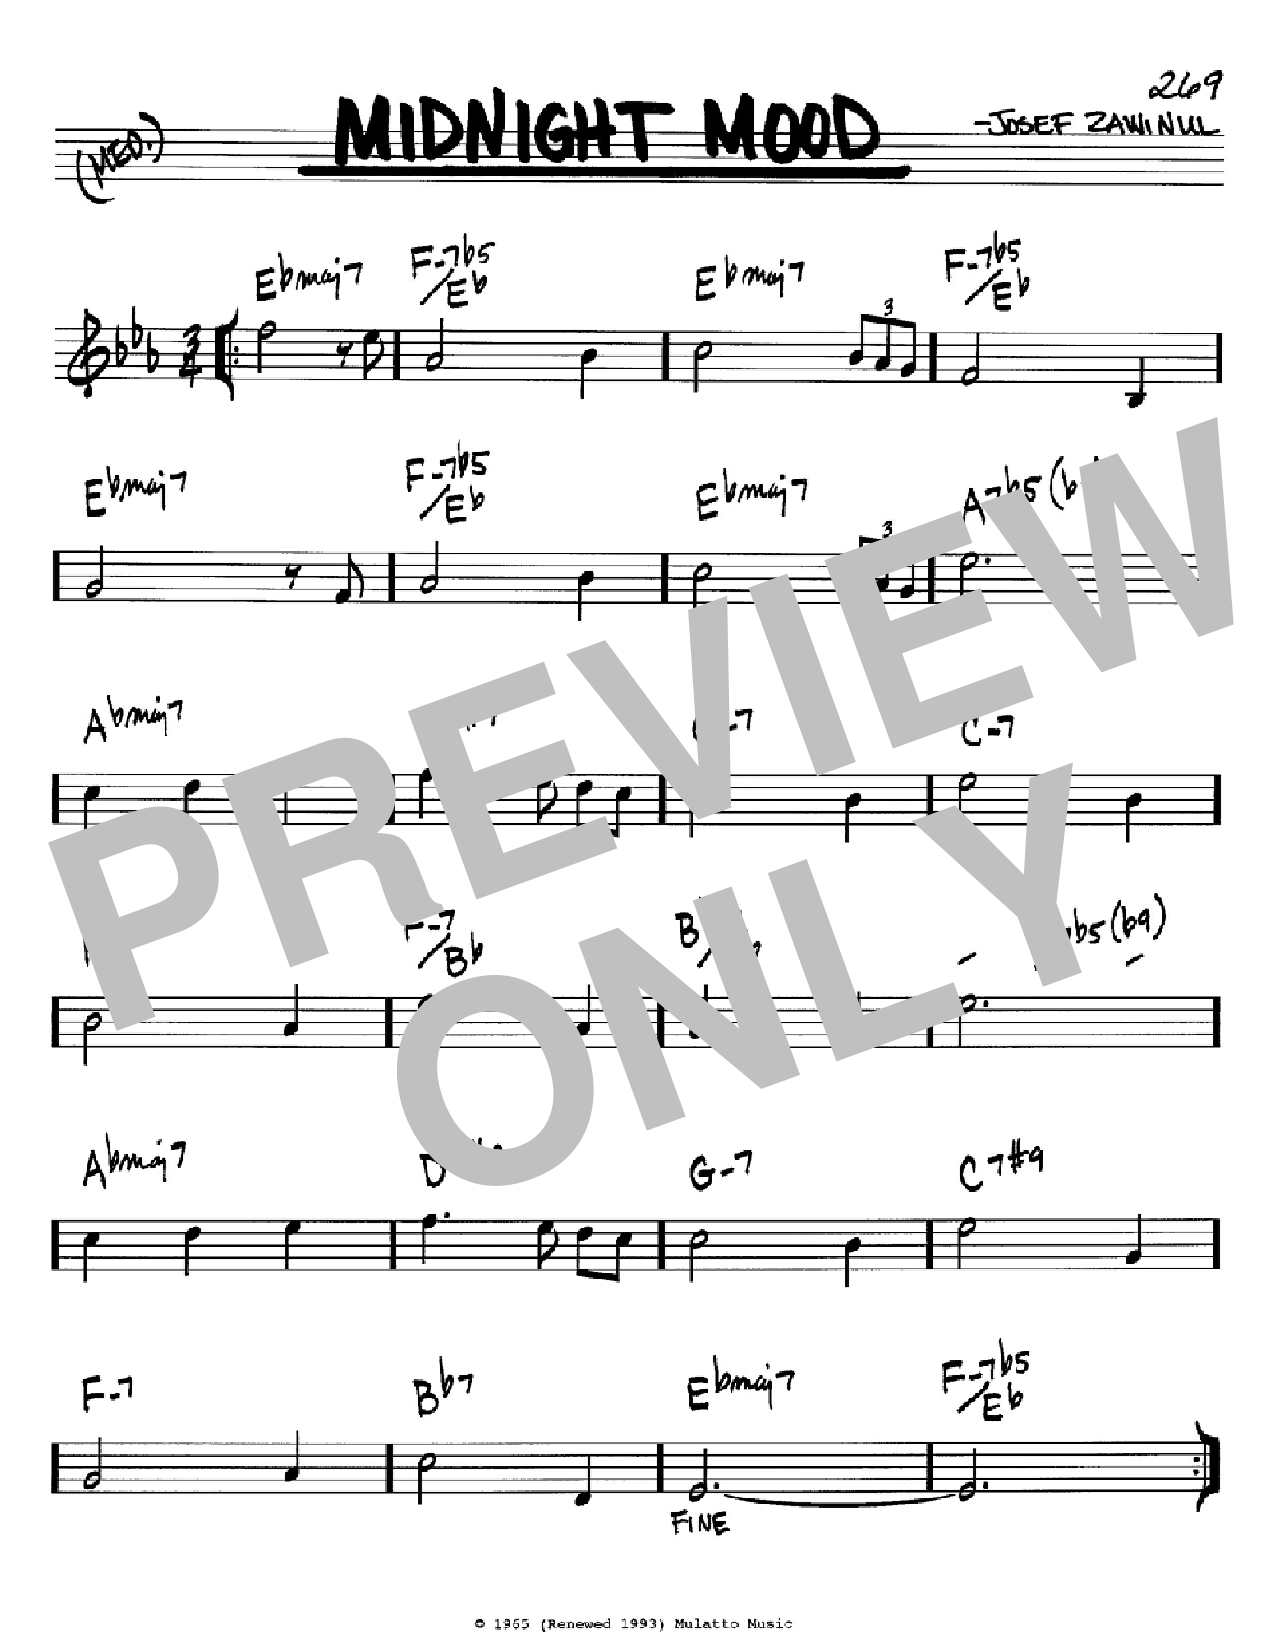 Midnight Mood Sheet Music